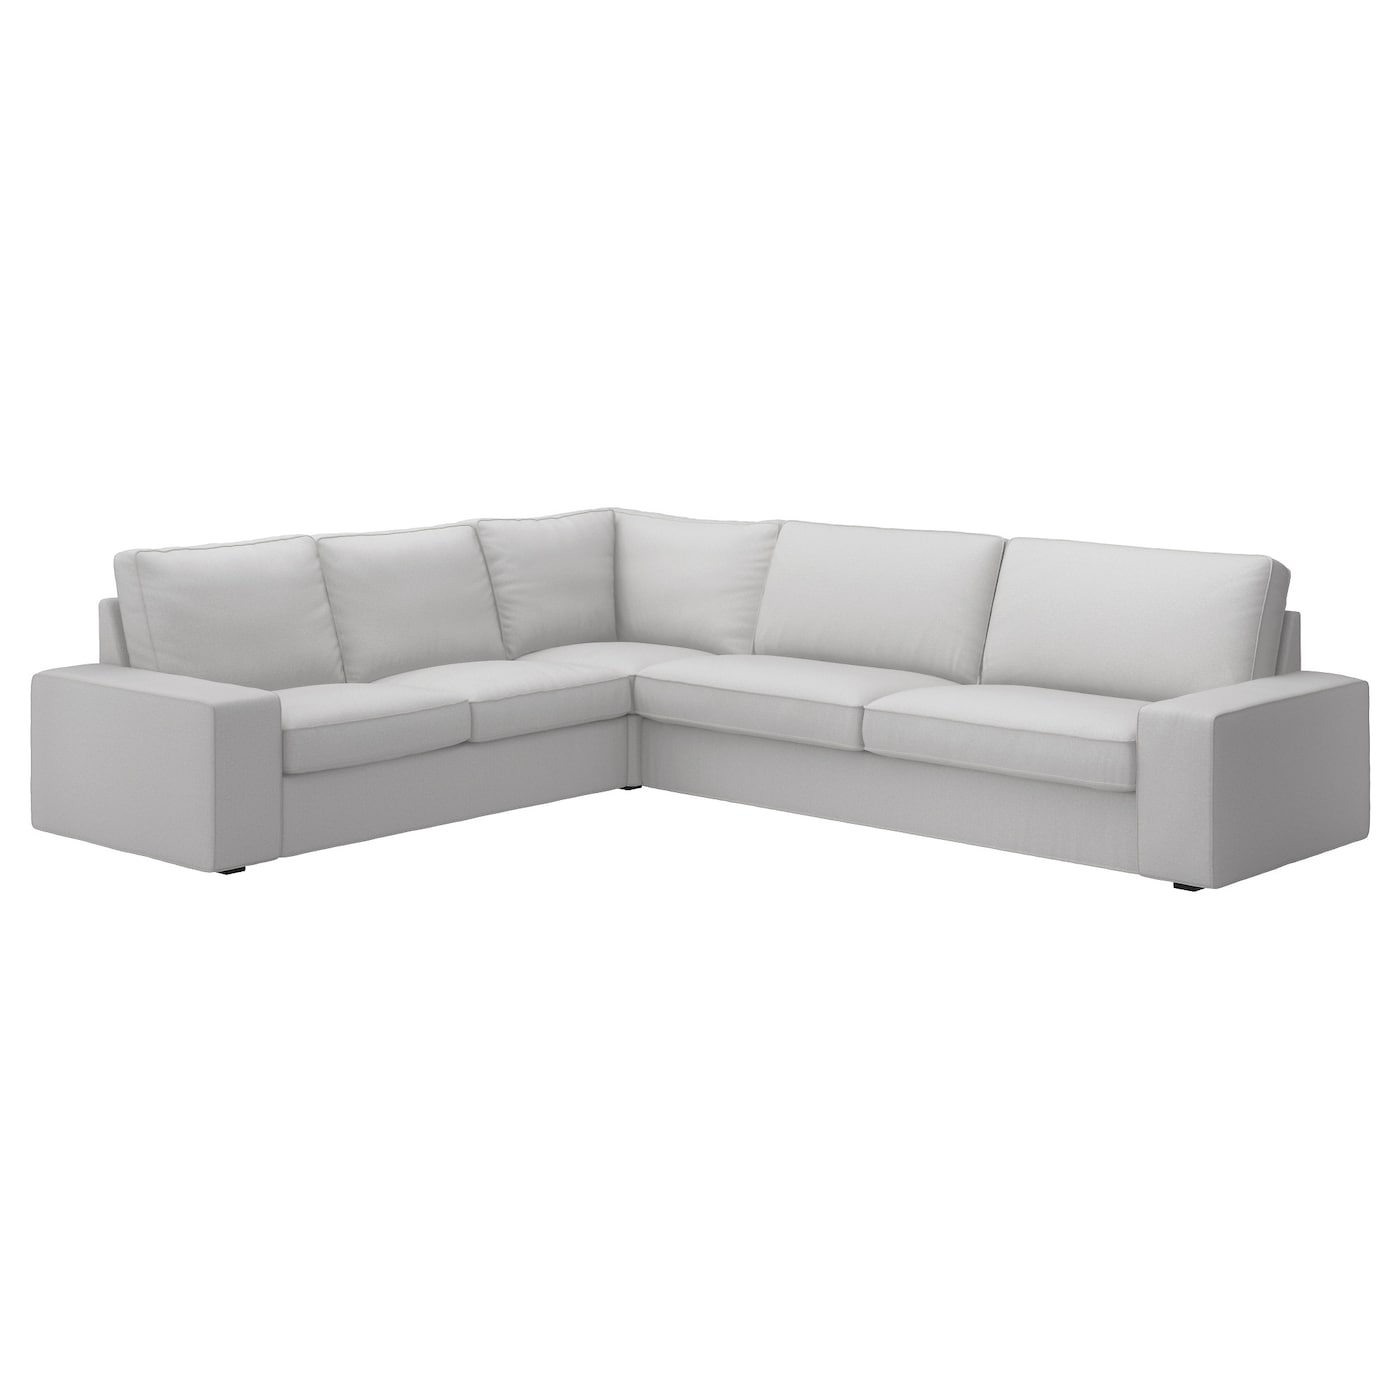 Schlafsofa ecksofa ikea  Free try out of Chemise Sofa from Living Divani in 3D, VR and AR